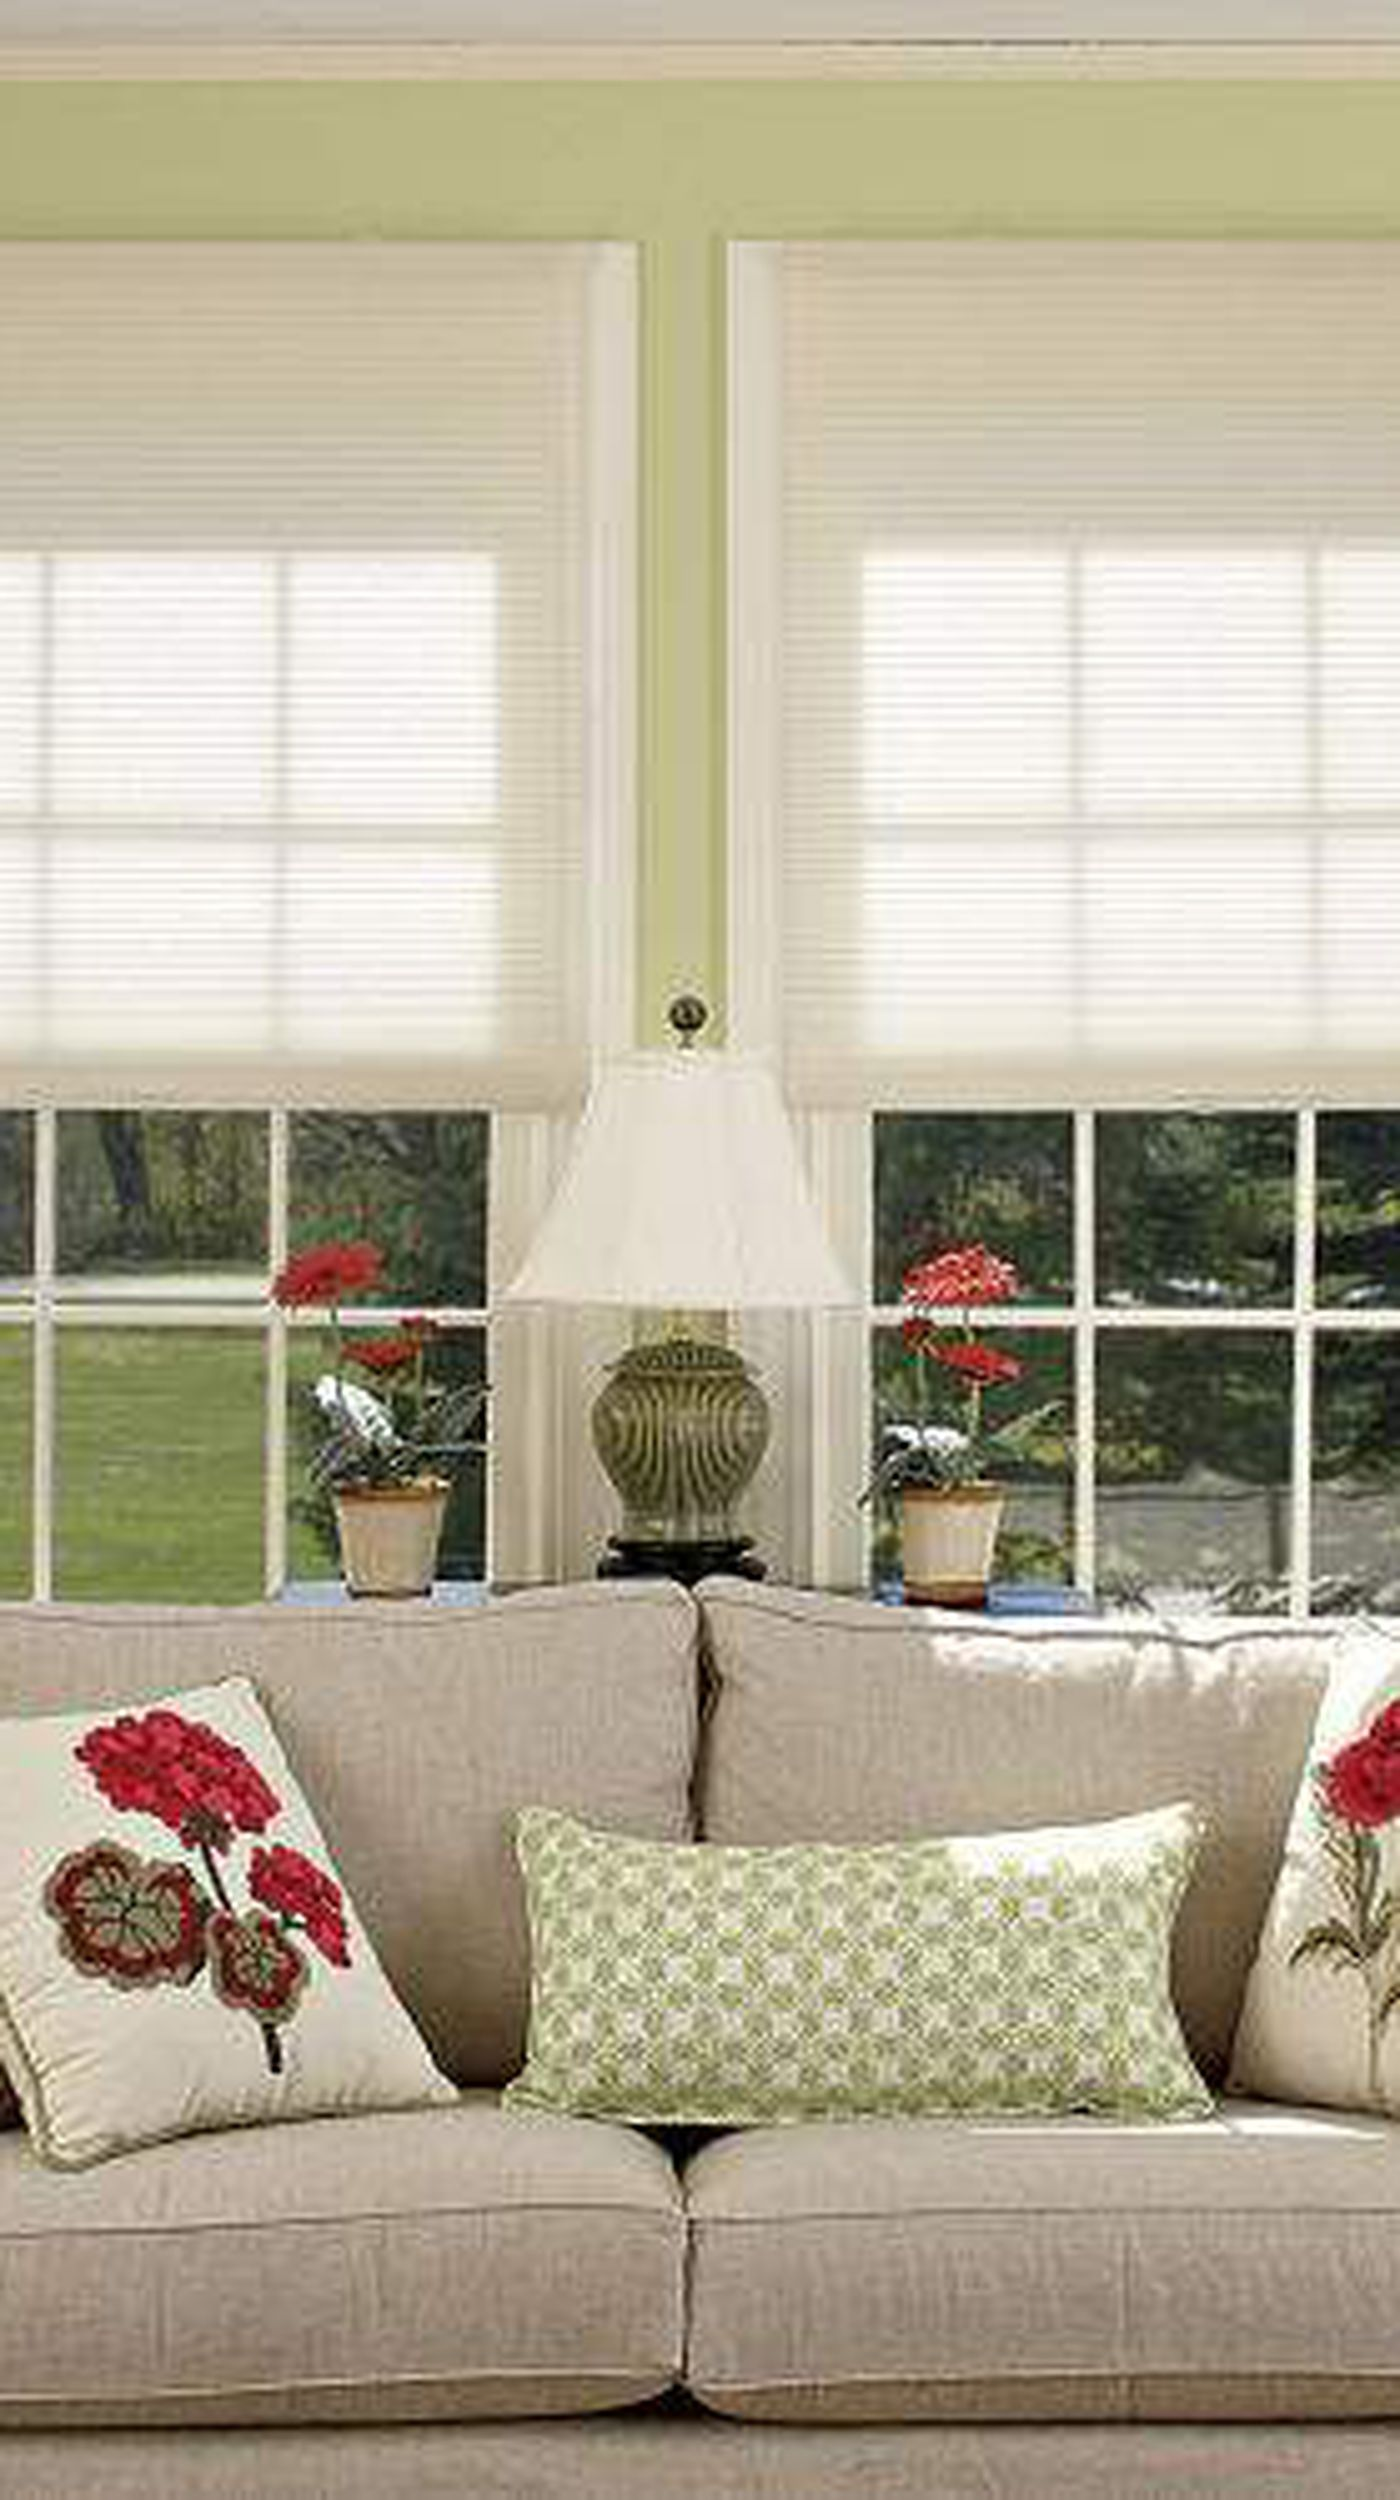 Let The Sun Shine In Tips For Cleaning Windows Curtains Shades